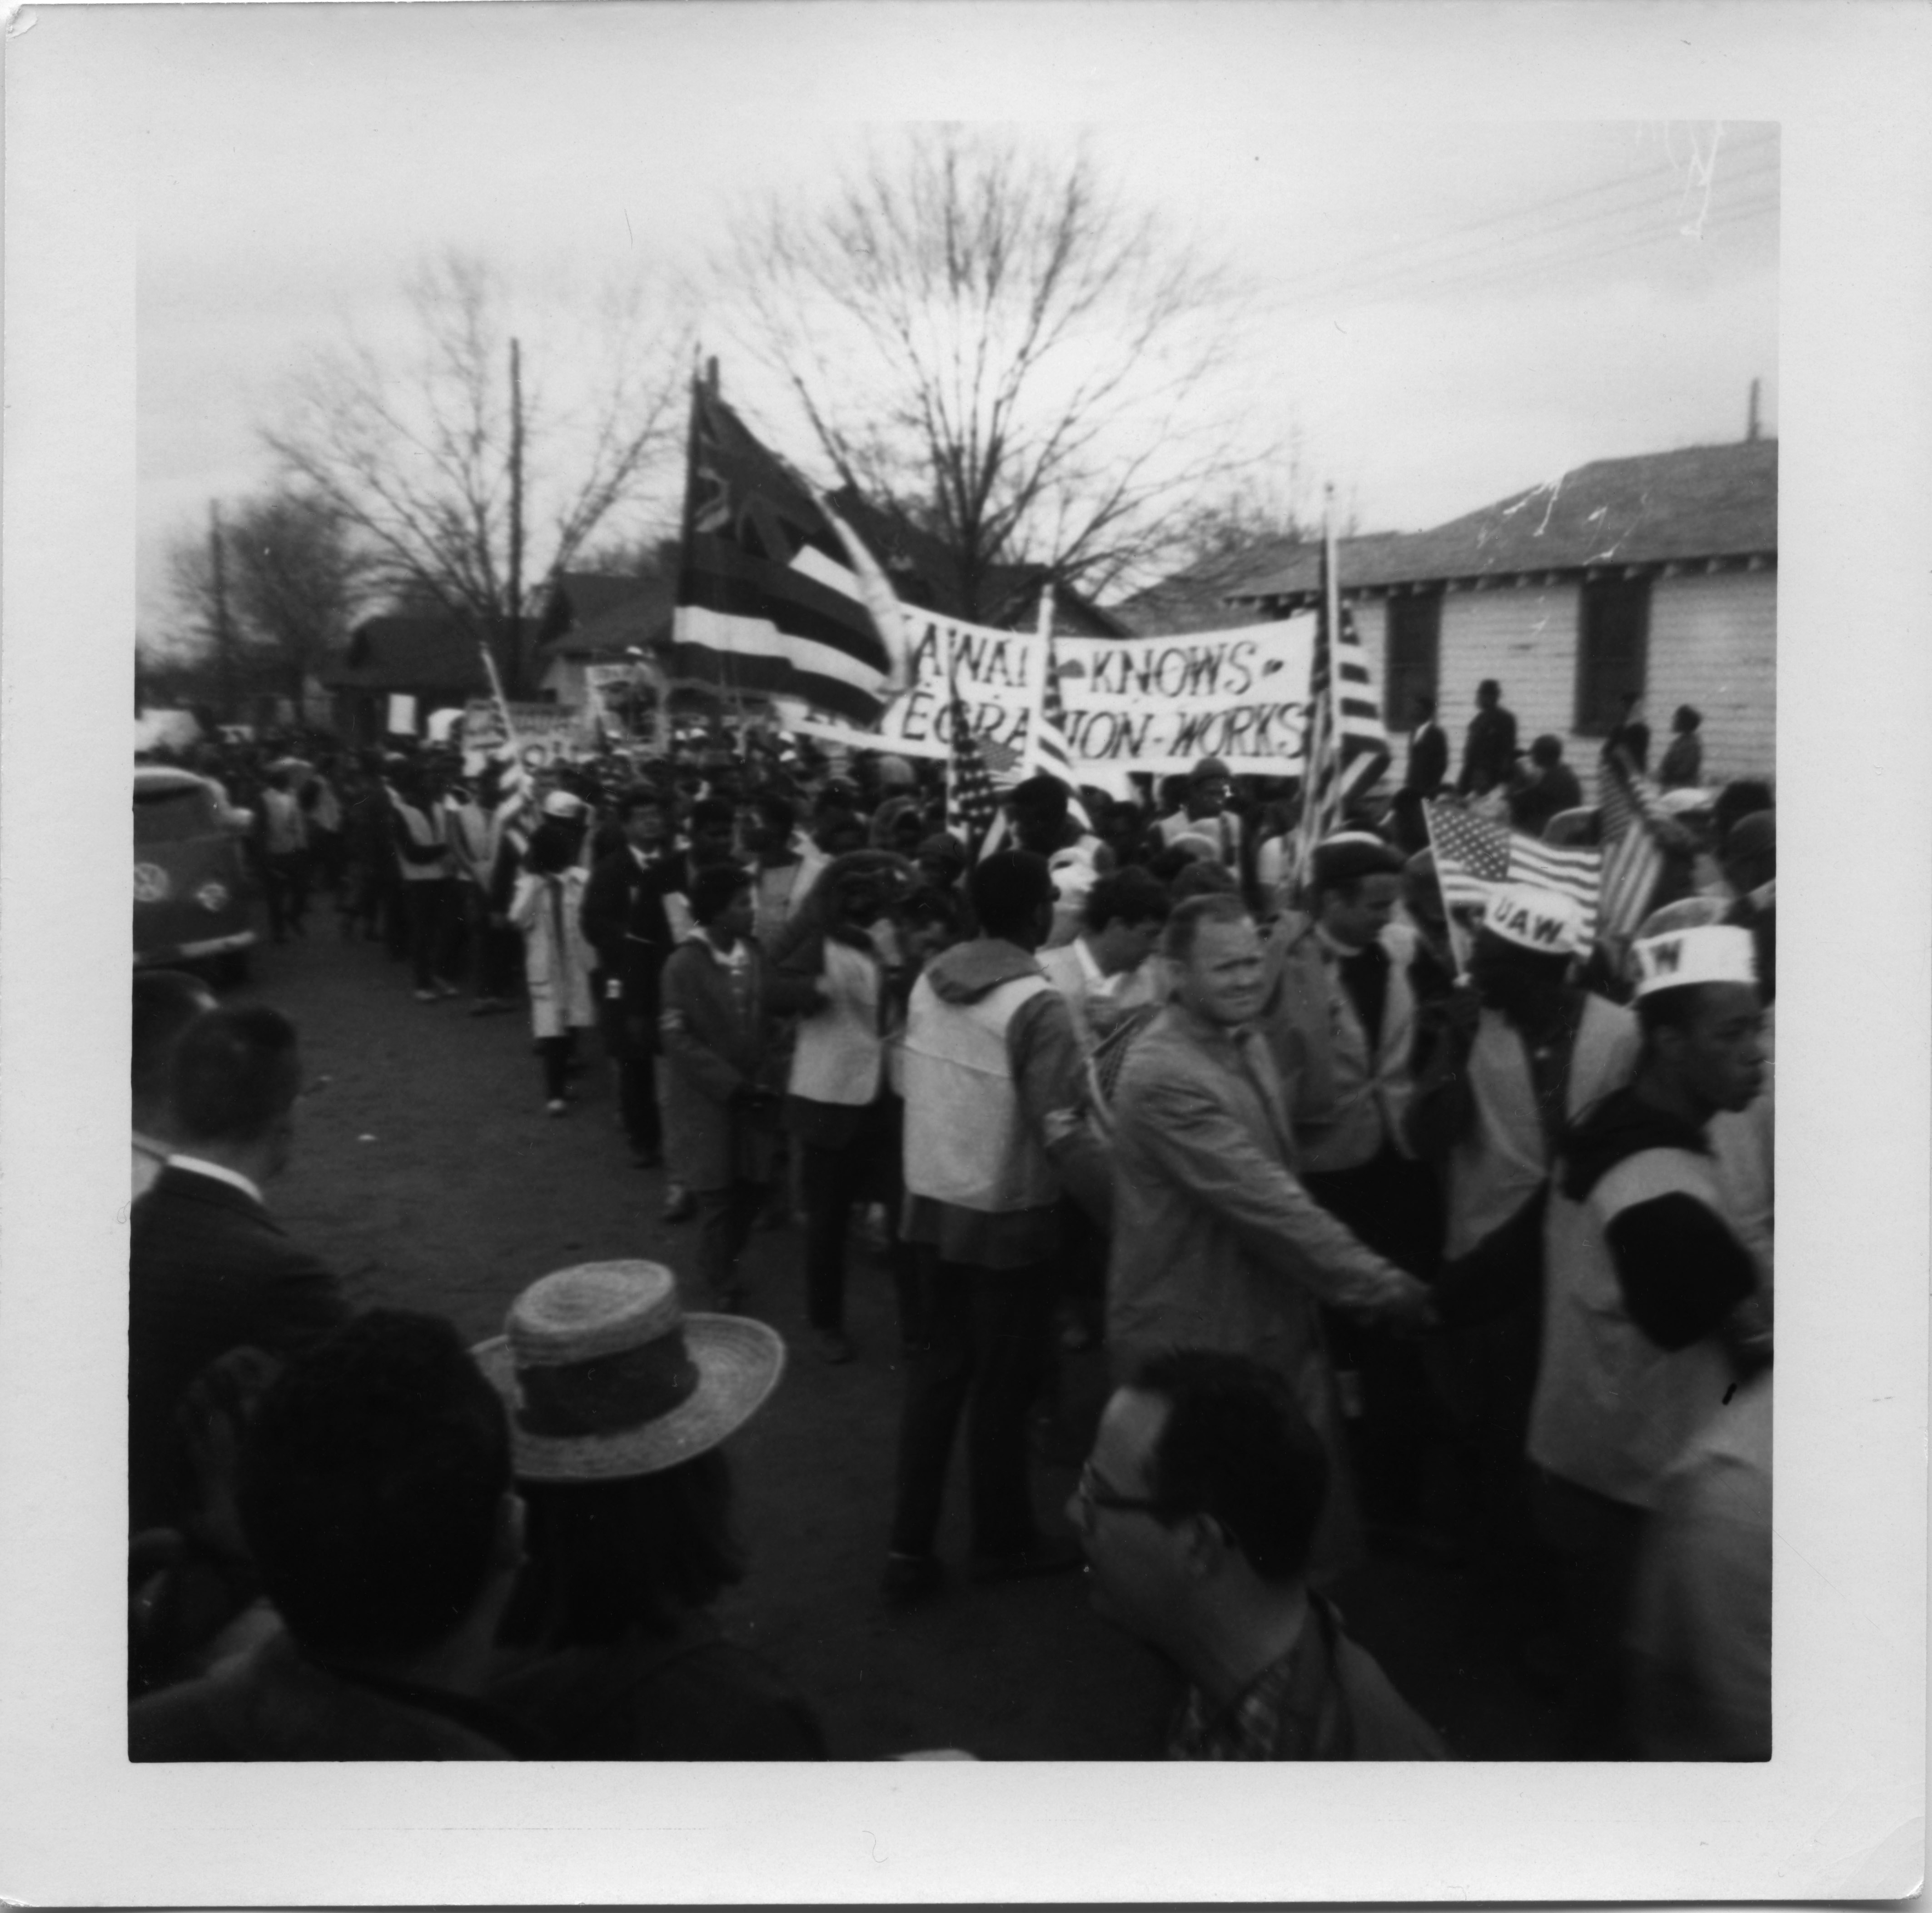 Image of Civil rights march from Selma to Montgomery, Ala., March 1965